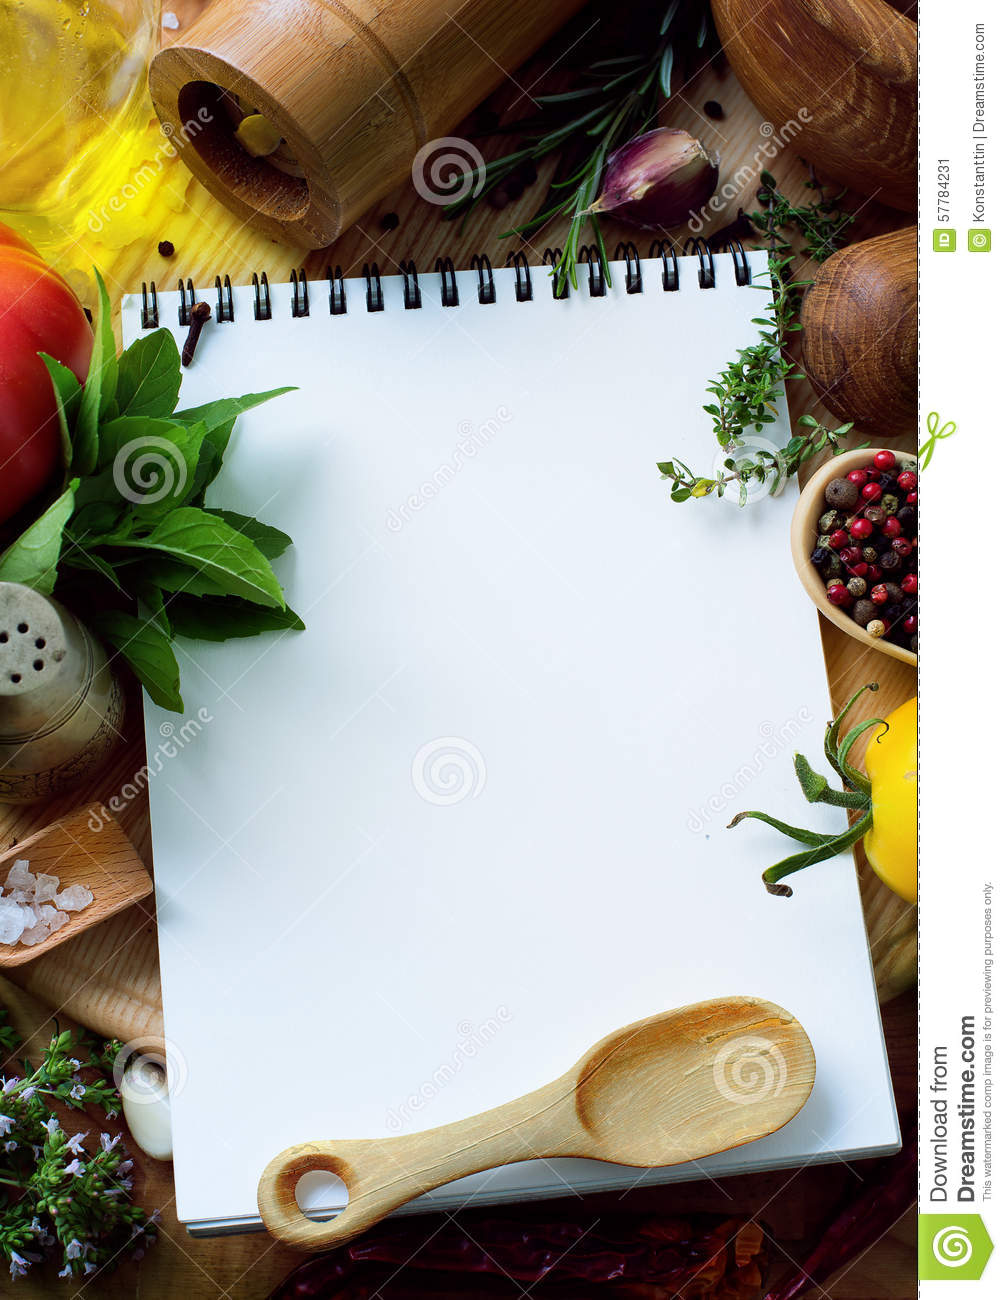 Wallpaper Food Cooking Grill Vegetables Peppers: Art Food Recipes Stock Image. Image Of Italian, Cookery